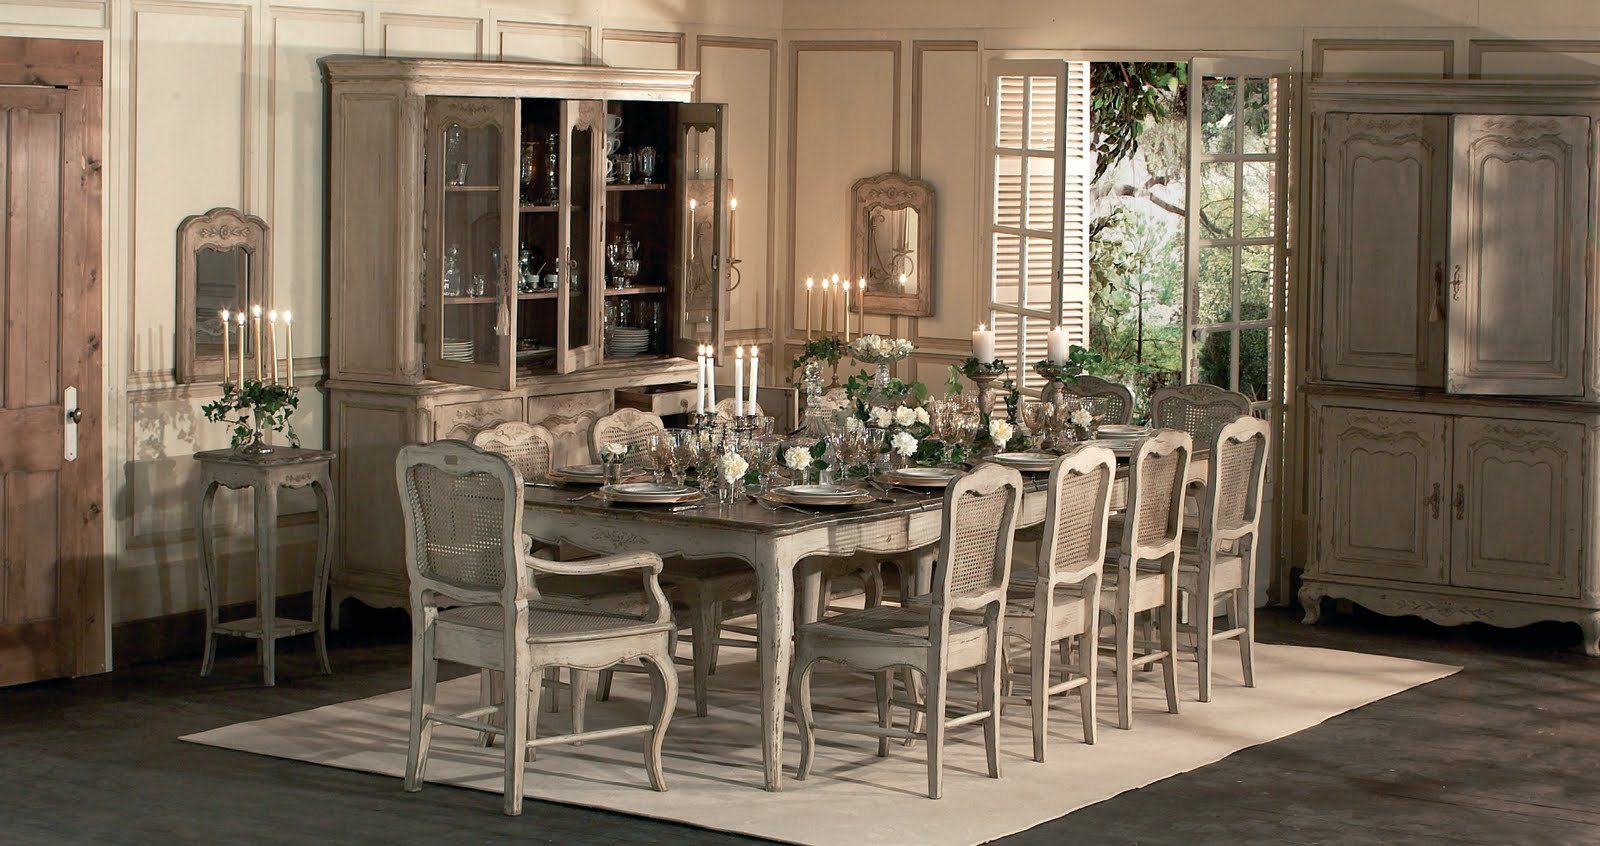 Remarkable French Country Dining Room Furniture 1600 x 846 · 220 kB · jpeg